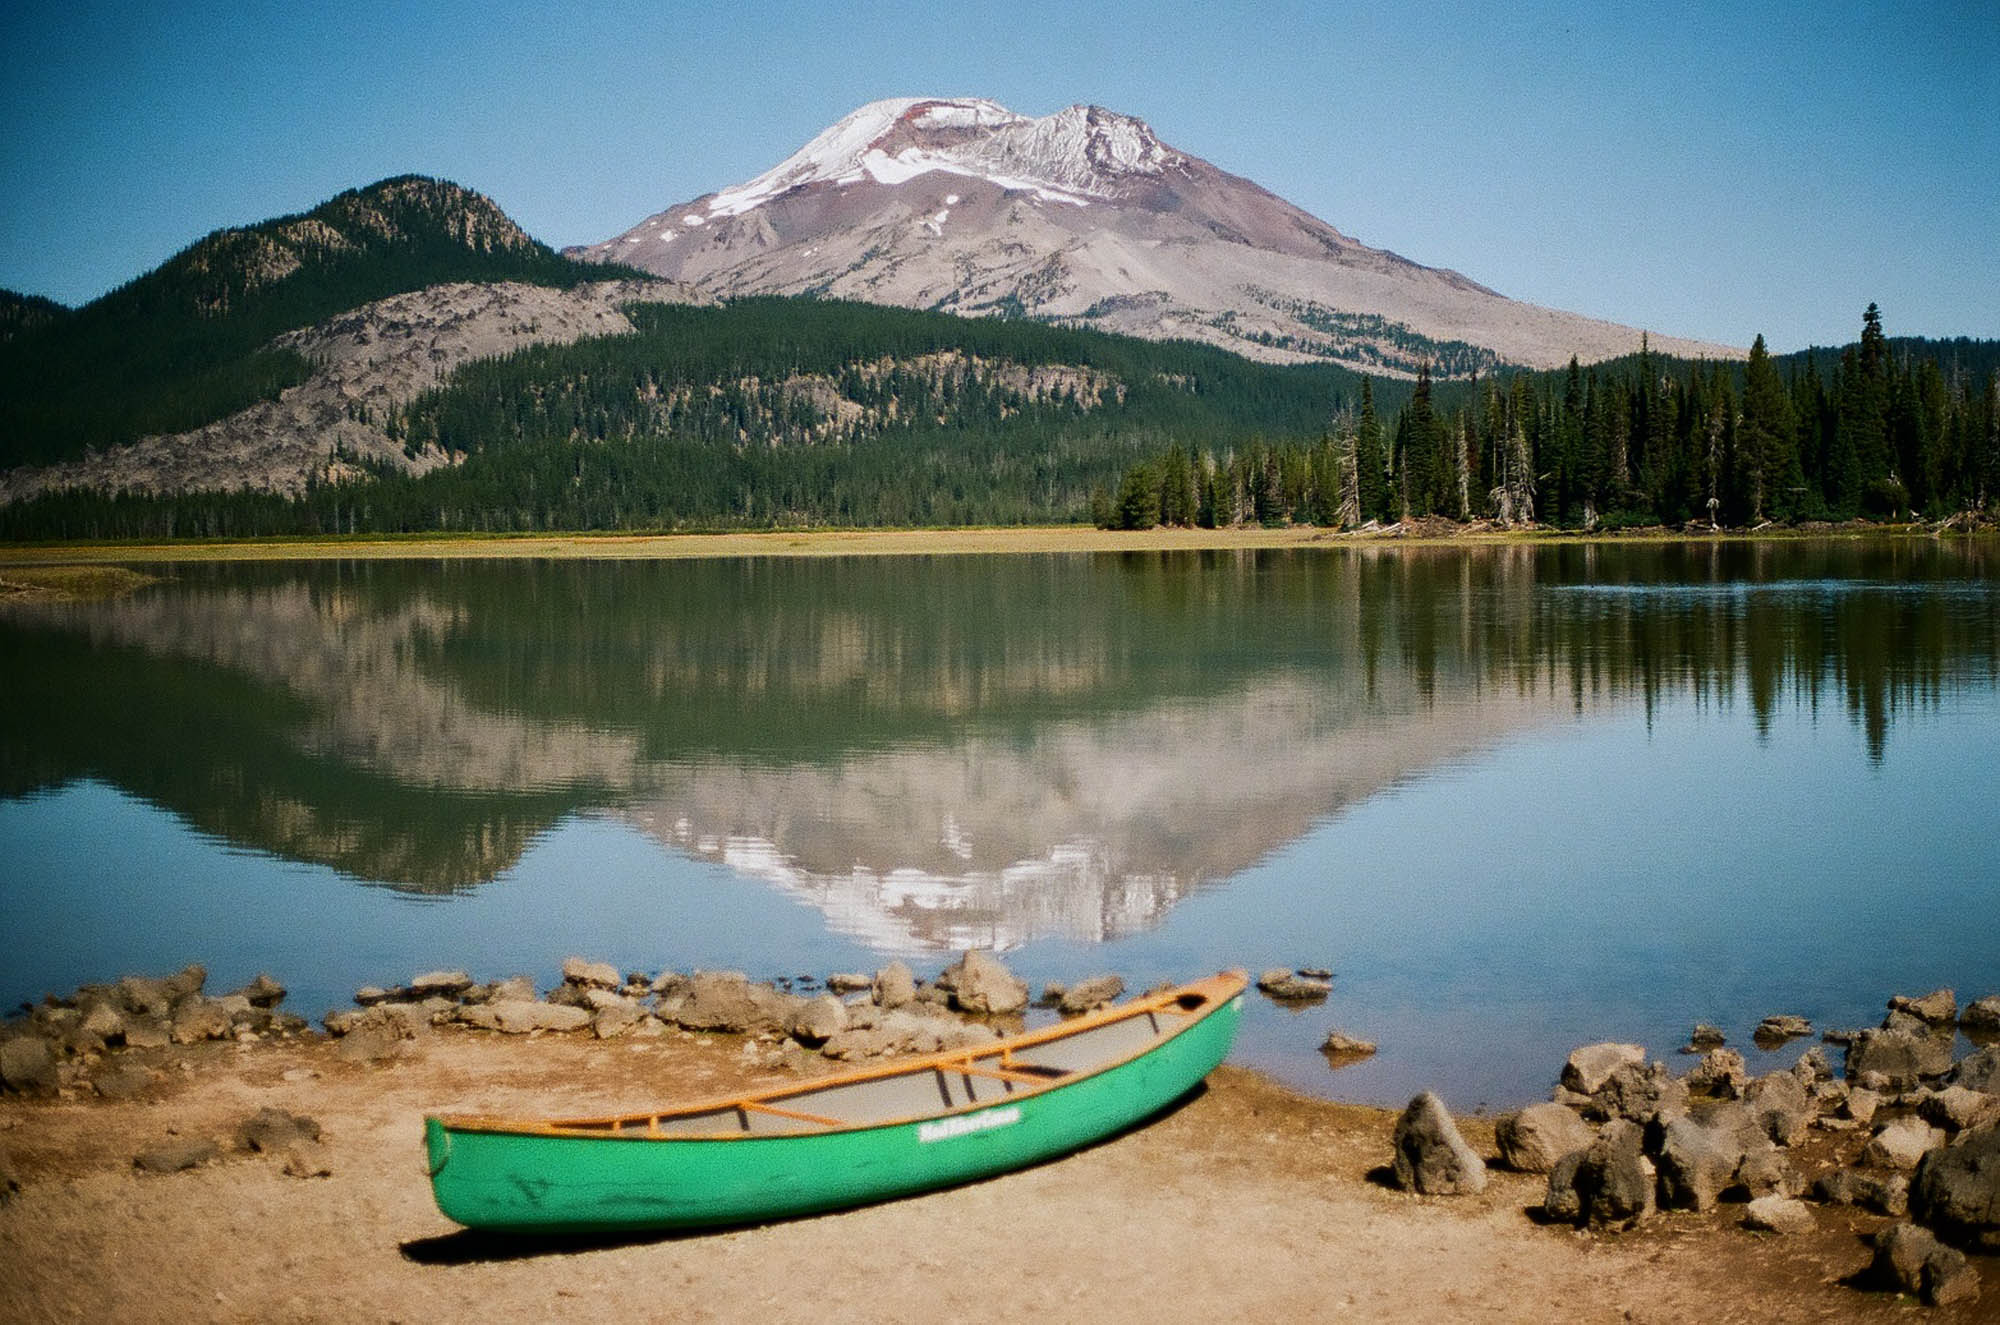 Lomography 400 ~ Canon AE-1 ~ Canon 50mm F1.8 South Sister Mountain in Central Oregon reflects in the calm waters of Sparks Lake. A perfect day for a paddle